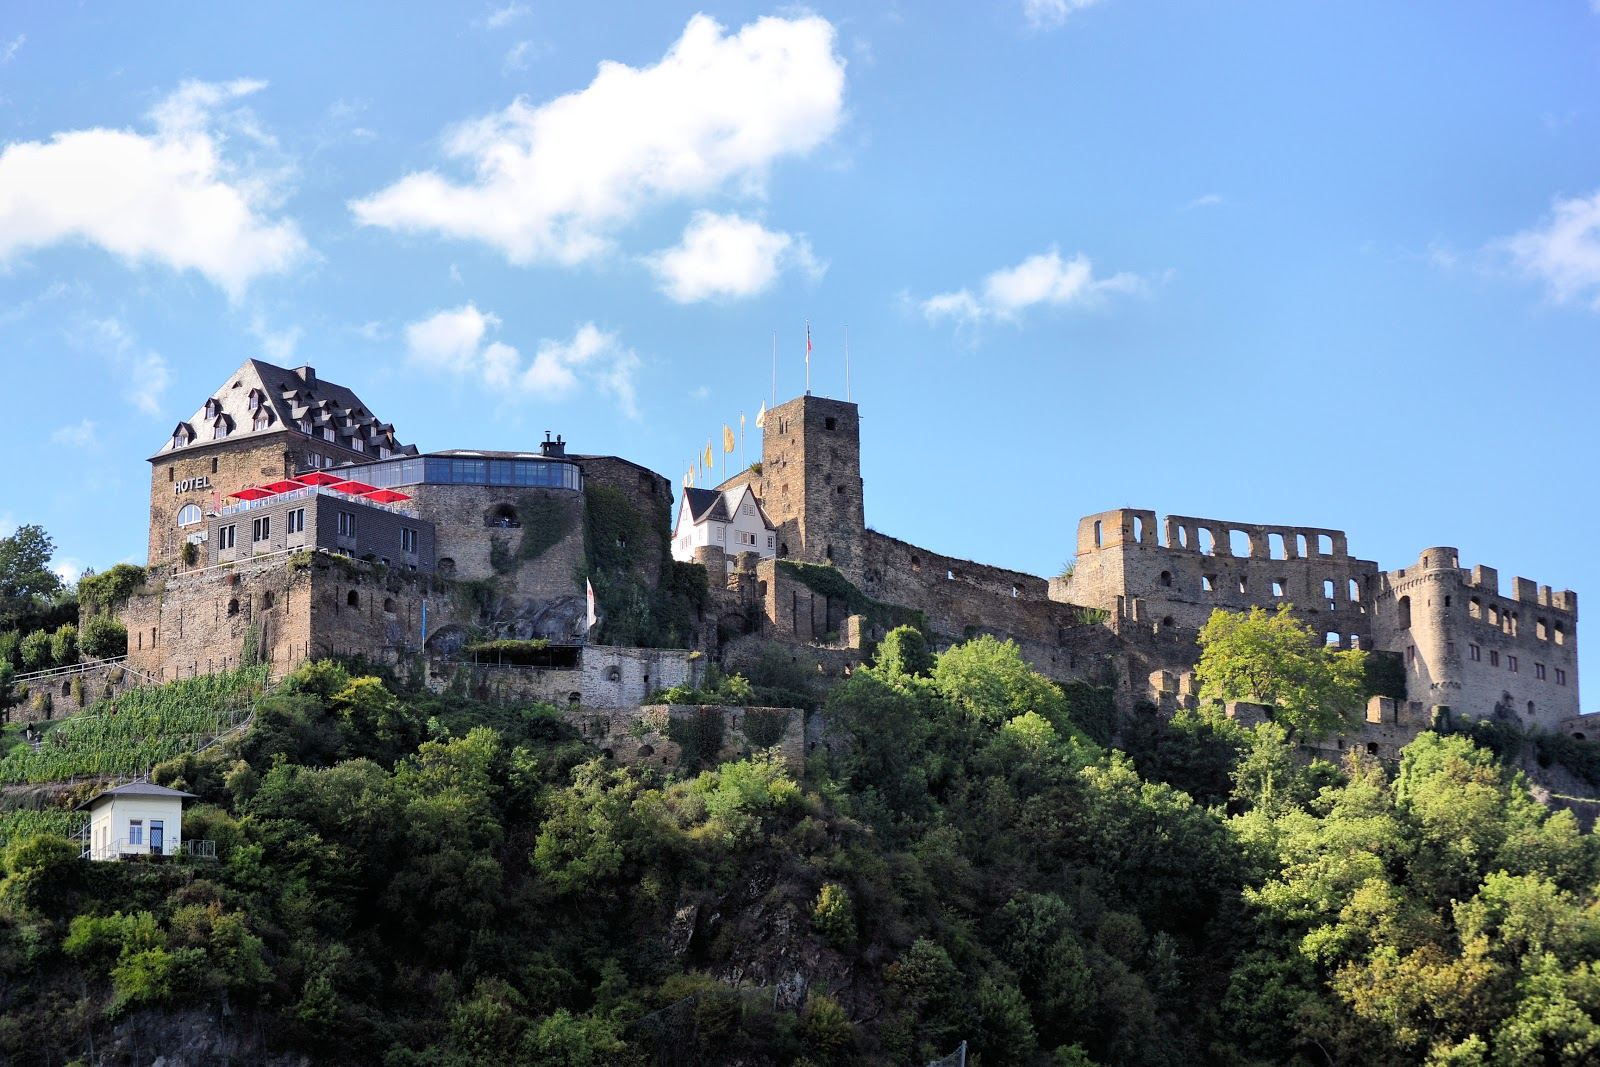 Rheinfels Castle stands reborn today and is home to a hotel, restaurant, wine cellar and museum.